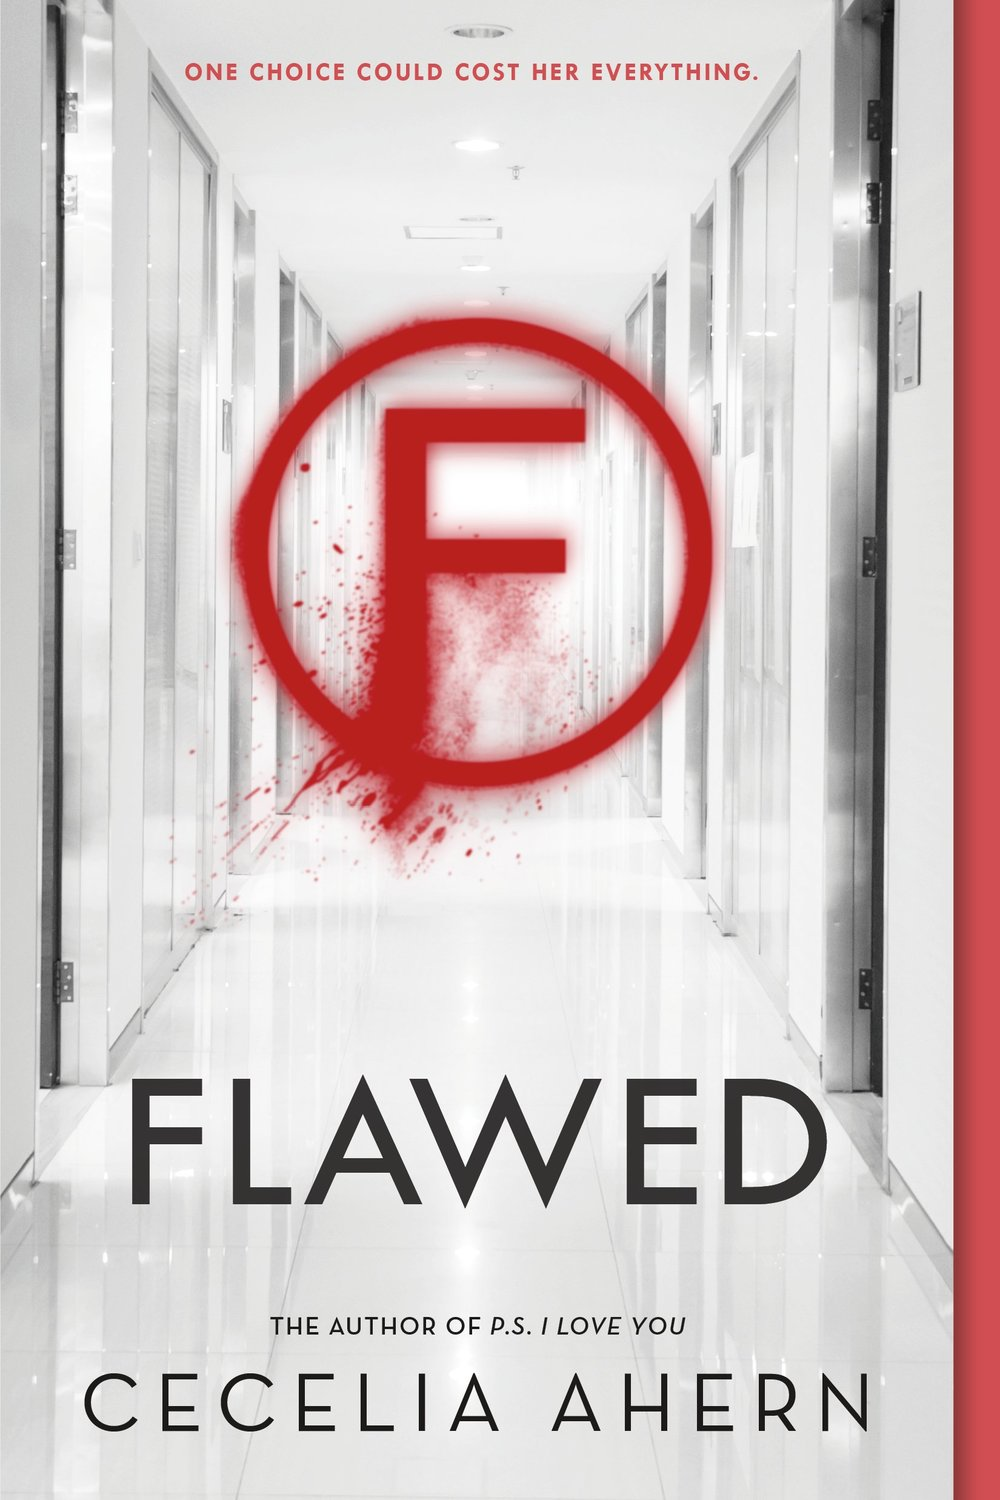 Kristy Nicolle Recommends- Flawed by Cecelia Ahern